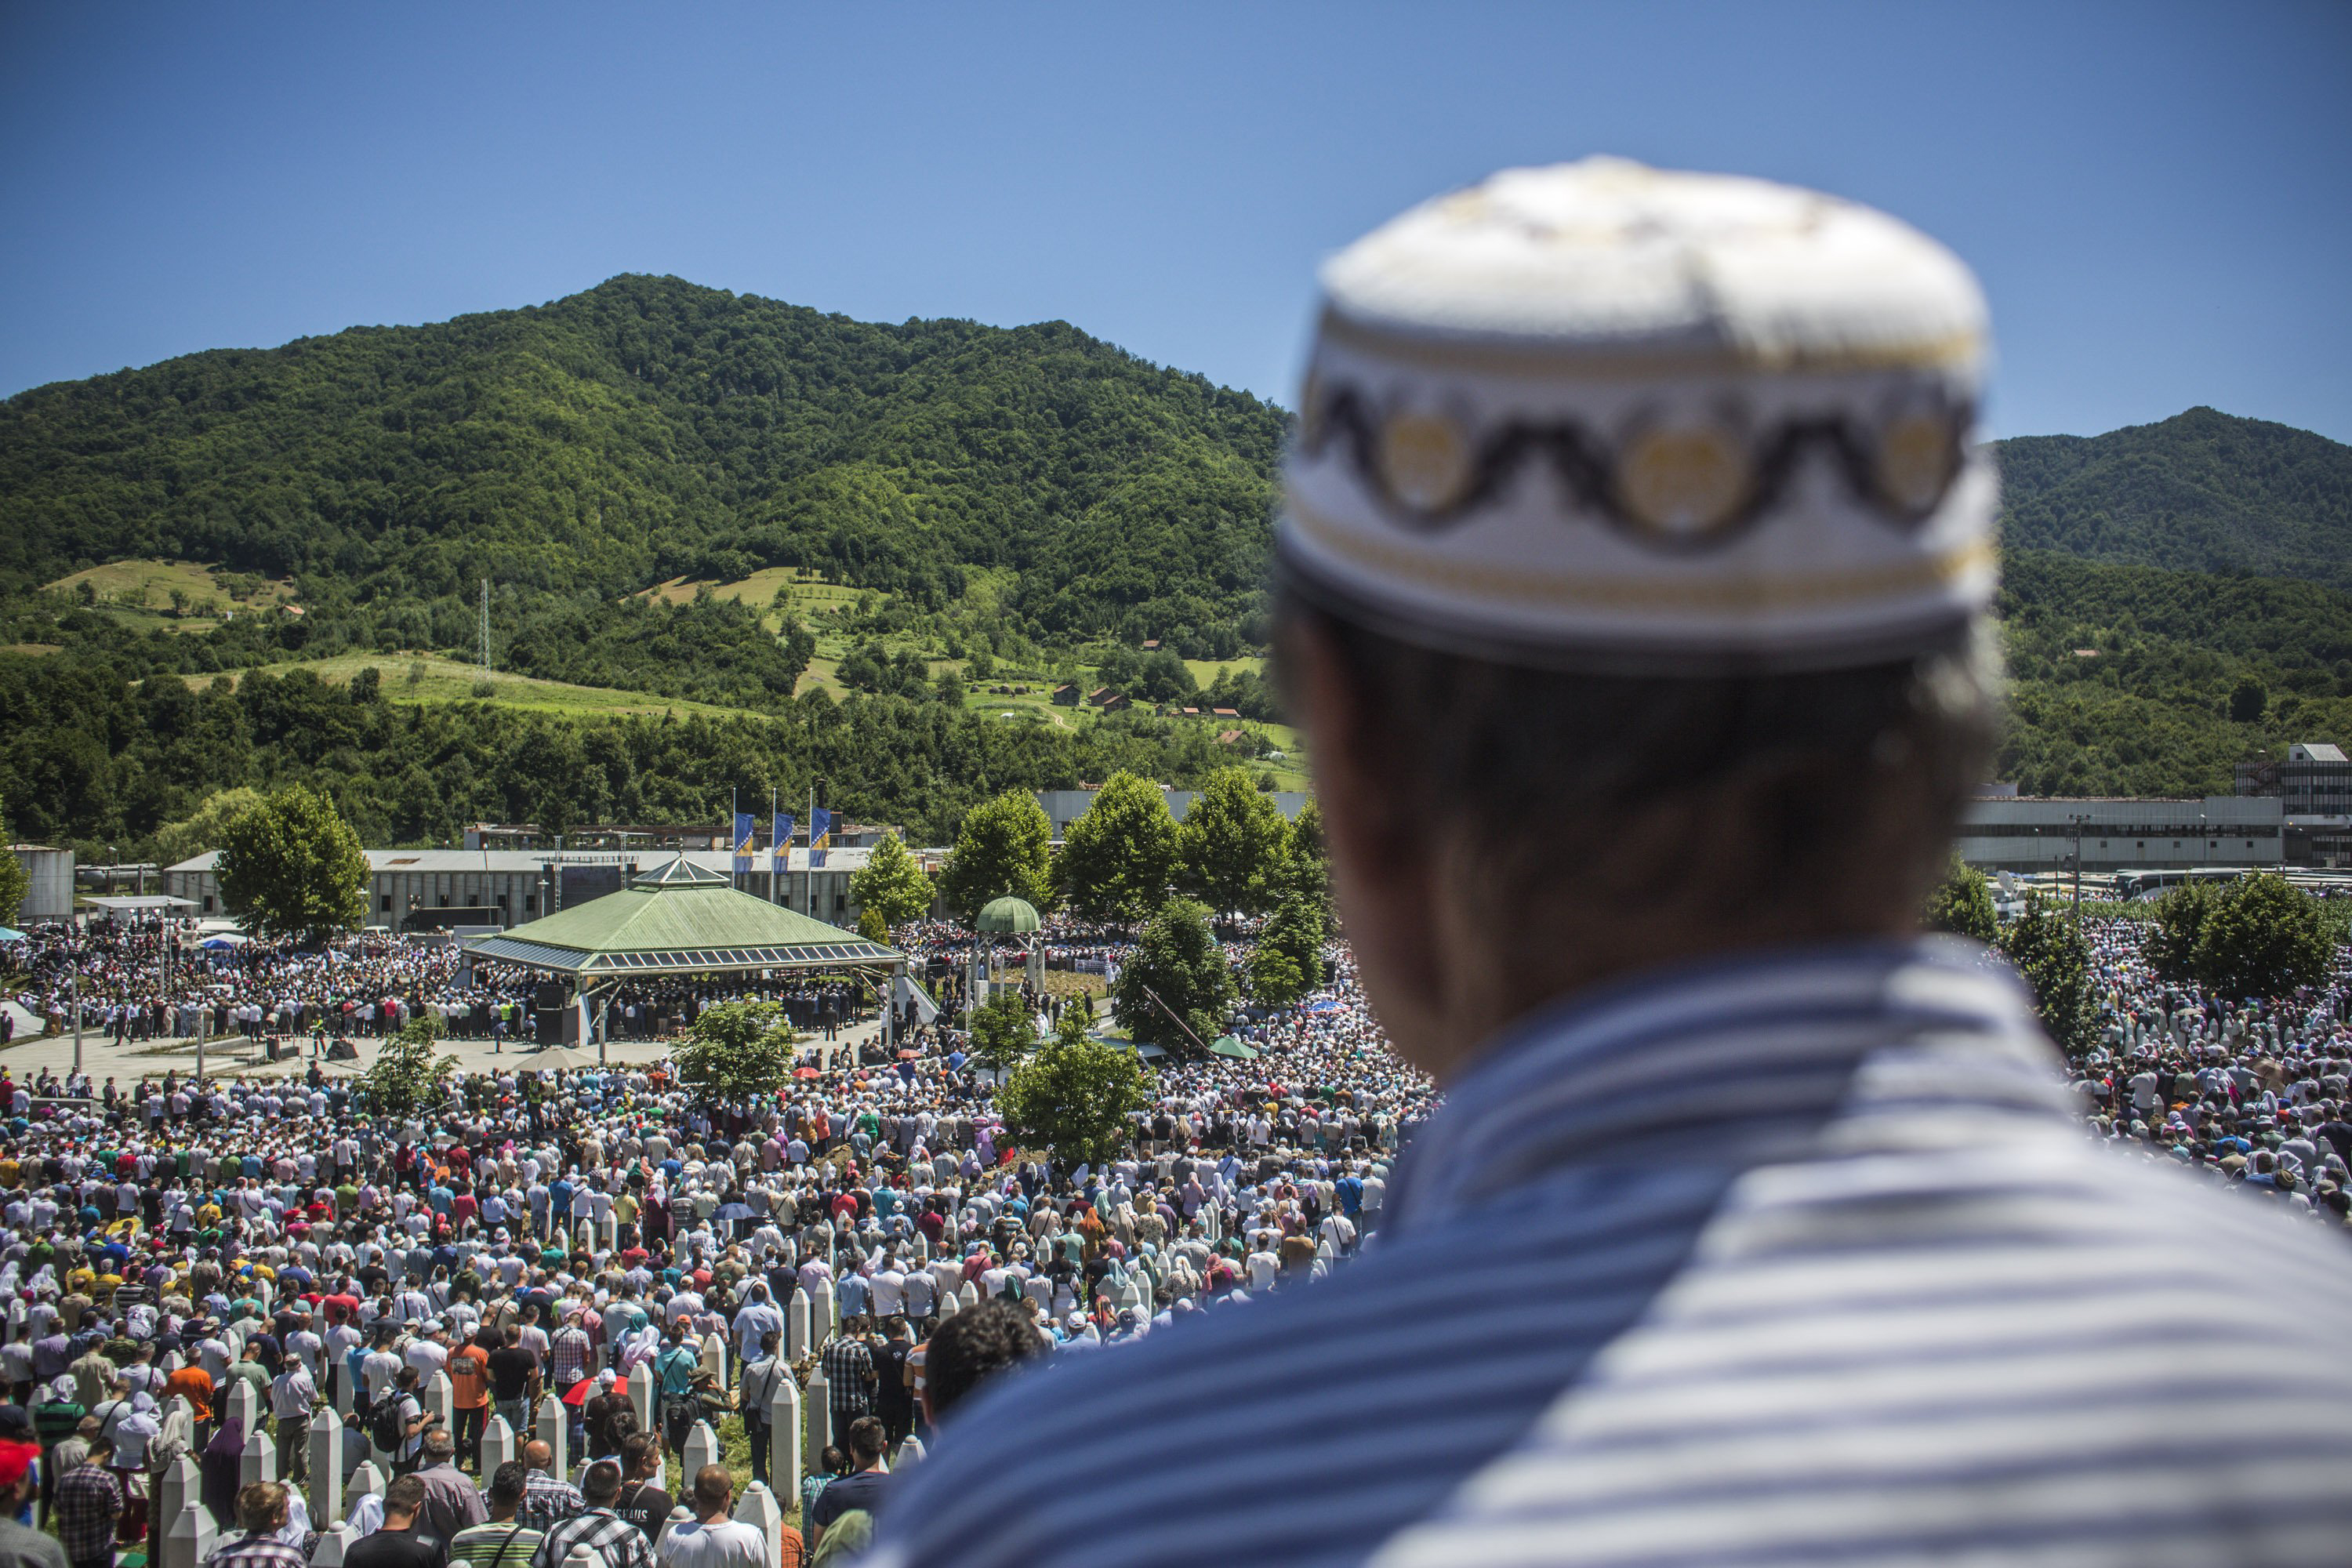 Muslims pray at the mass funeral for 136 newly-identified victims of the 1995 Srebrenica massacre at the Potocari cemetery and memorial on July 11, 2015 in Srebrenica, Bosnia.